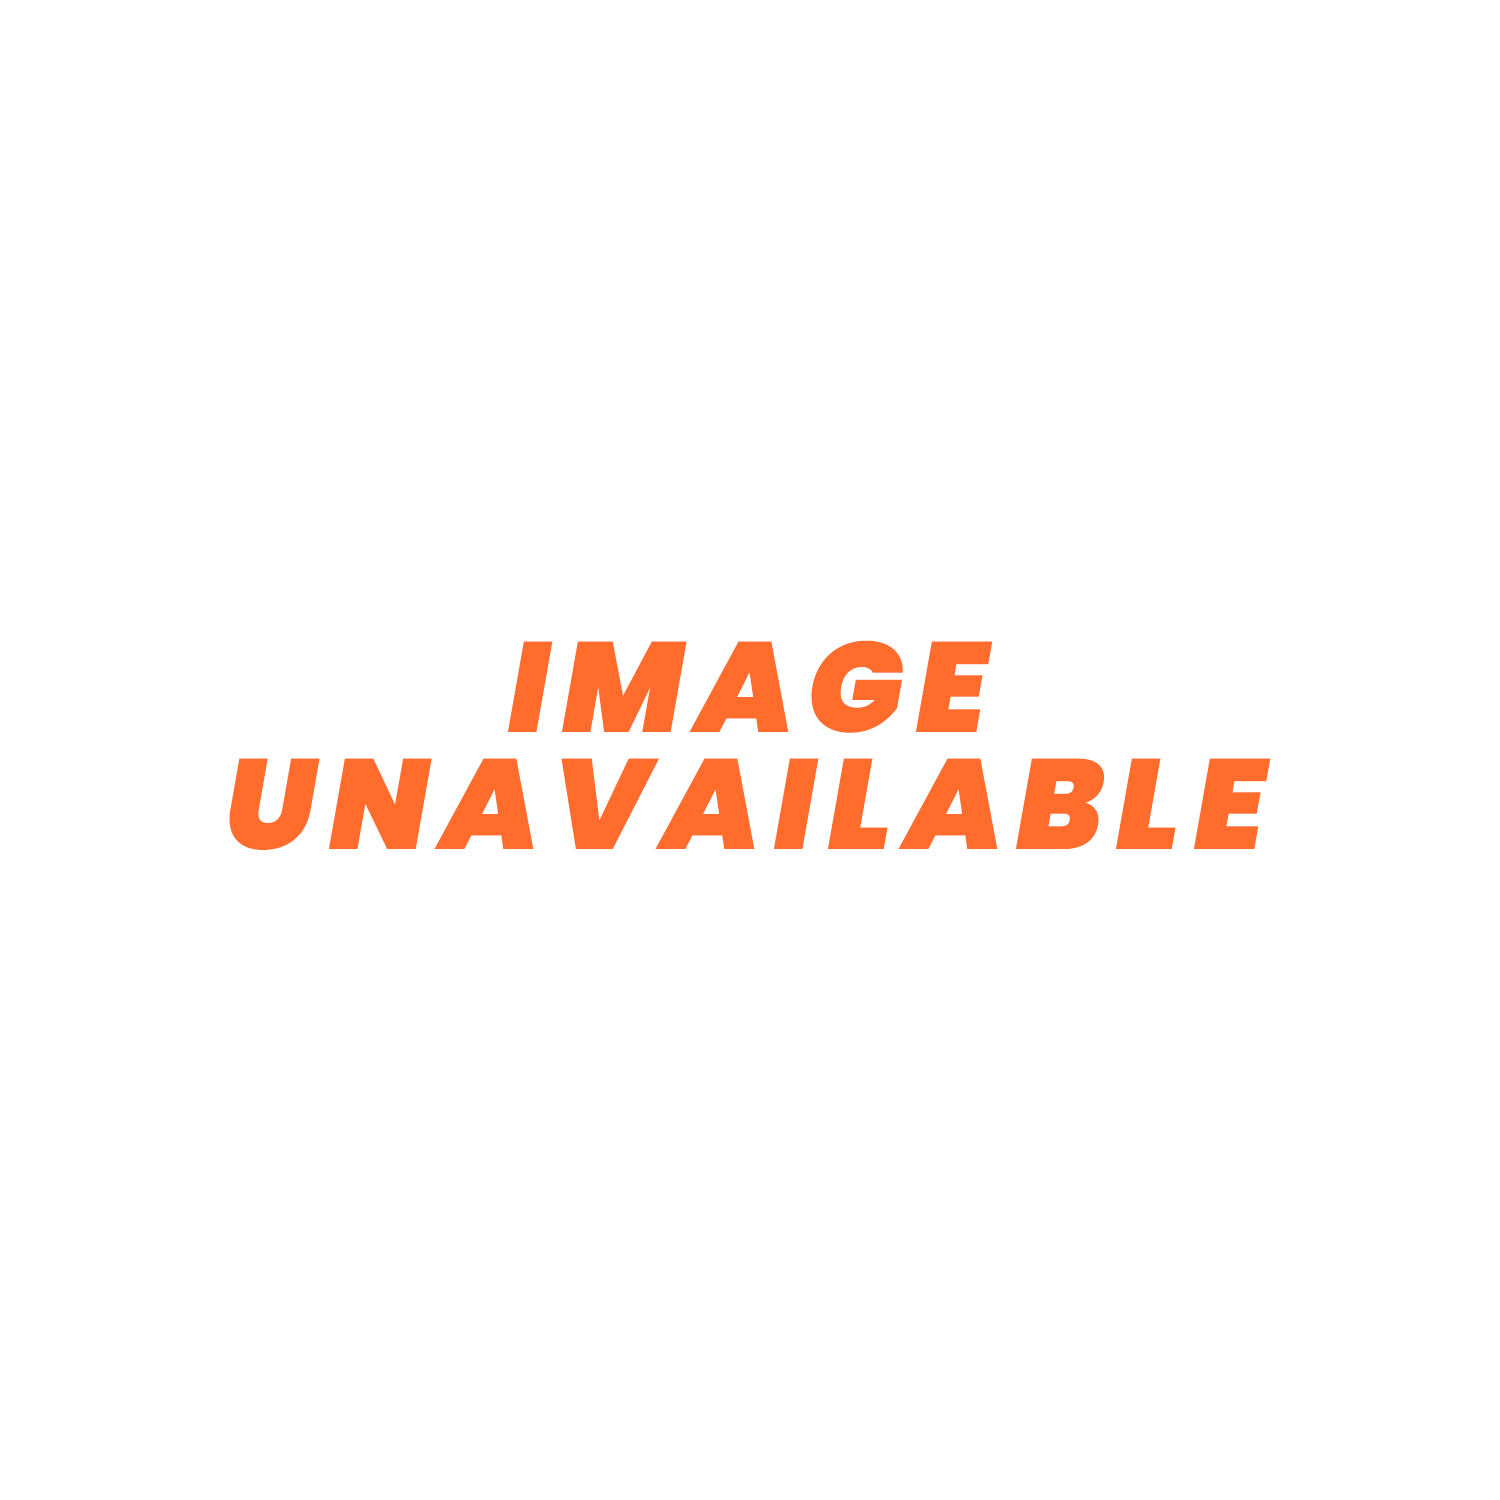 standard blade fuse box with leds 6 way rh t7design co uk blade fuse box south africa blade fuse box wiring